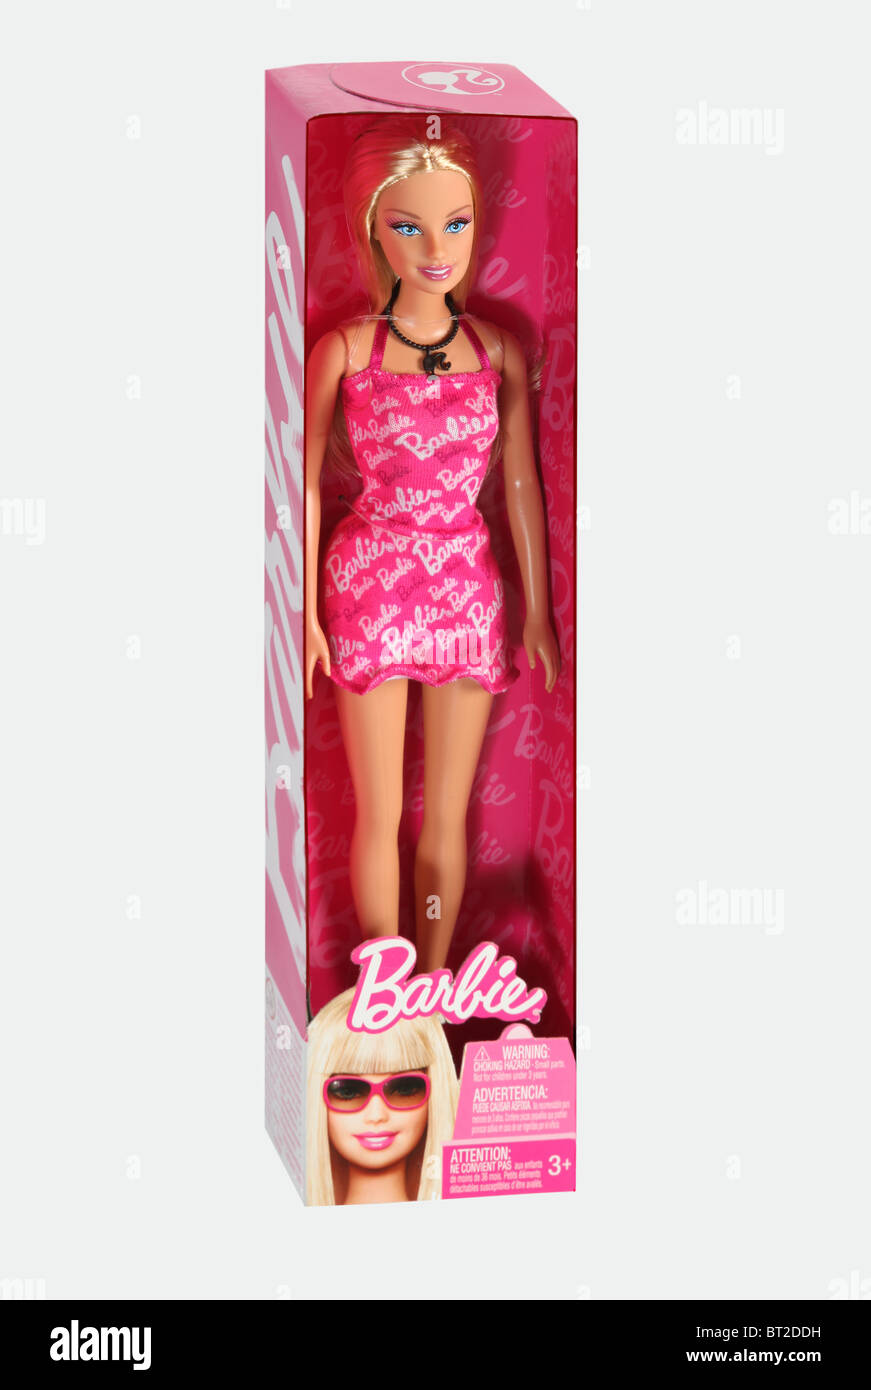 Barbie doll wearing a pink dress and name 'Barbie' across the dress, in original box.. Cut out - Stock Image